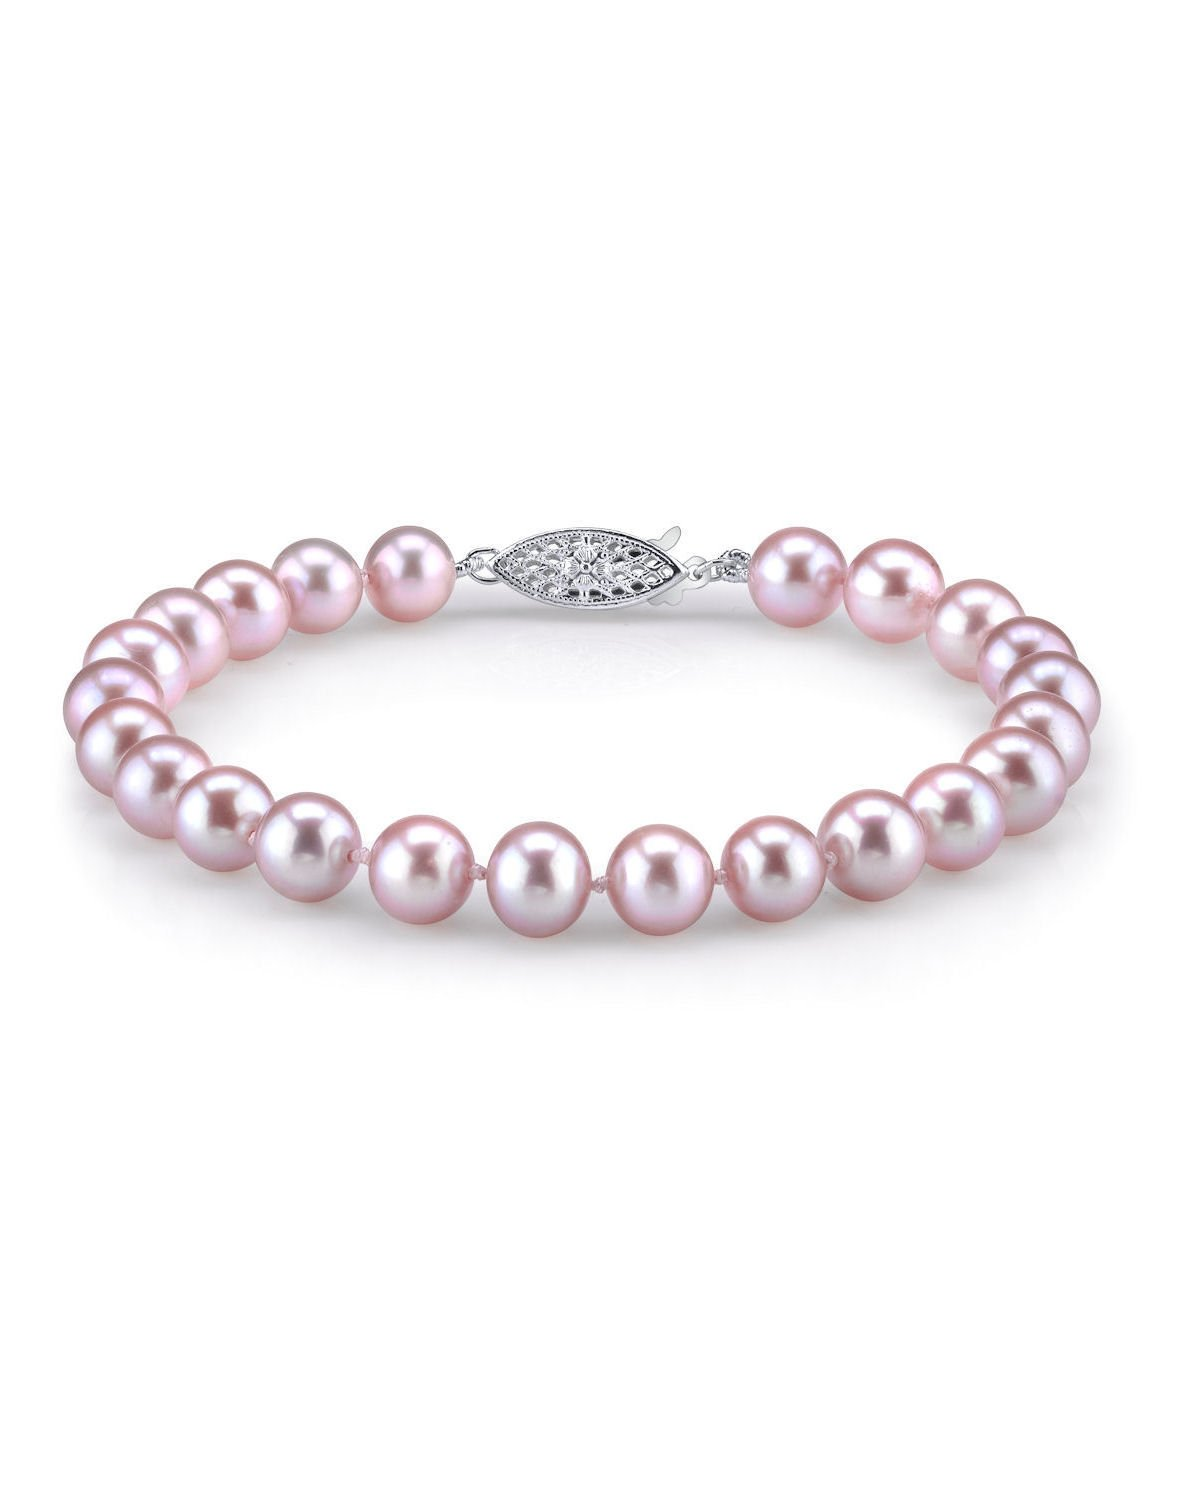 14K Gold 8-9mm Pink Freshwater Cultured Pearl Bracelet - AAA Quality